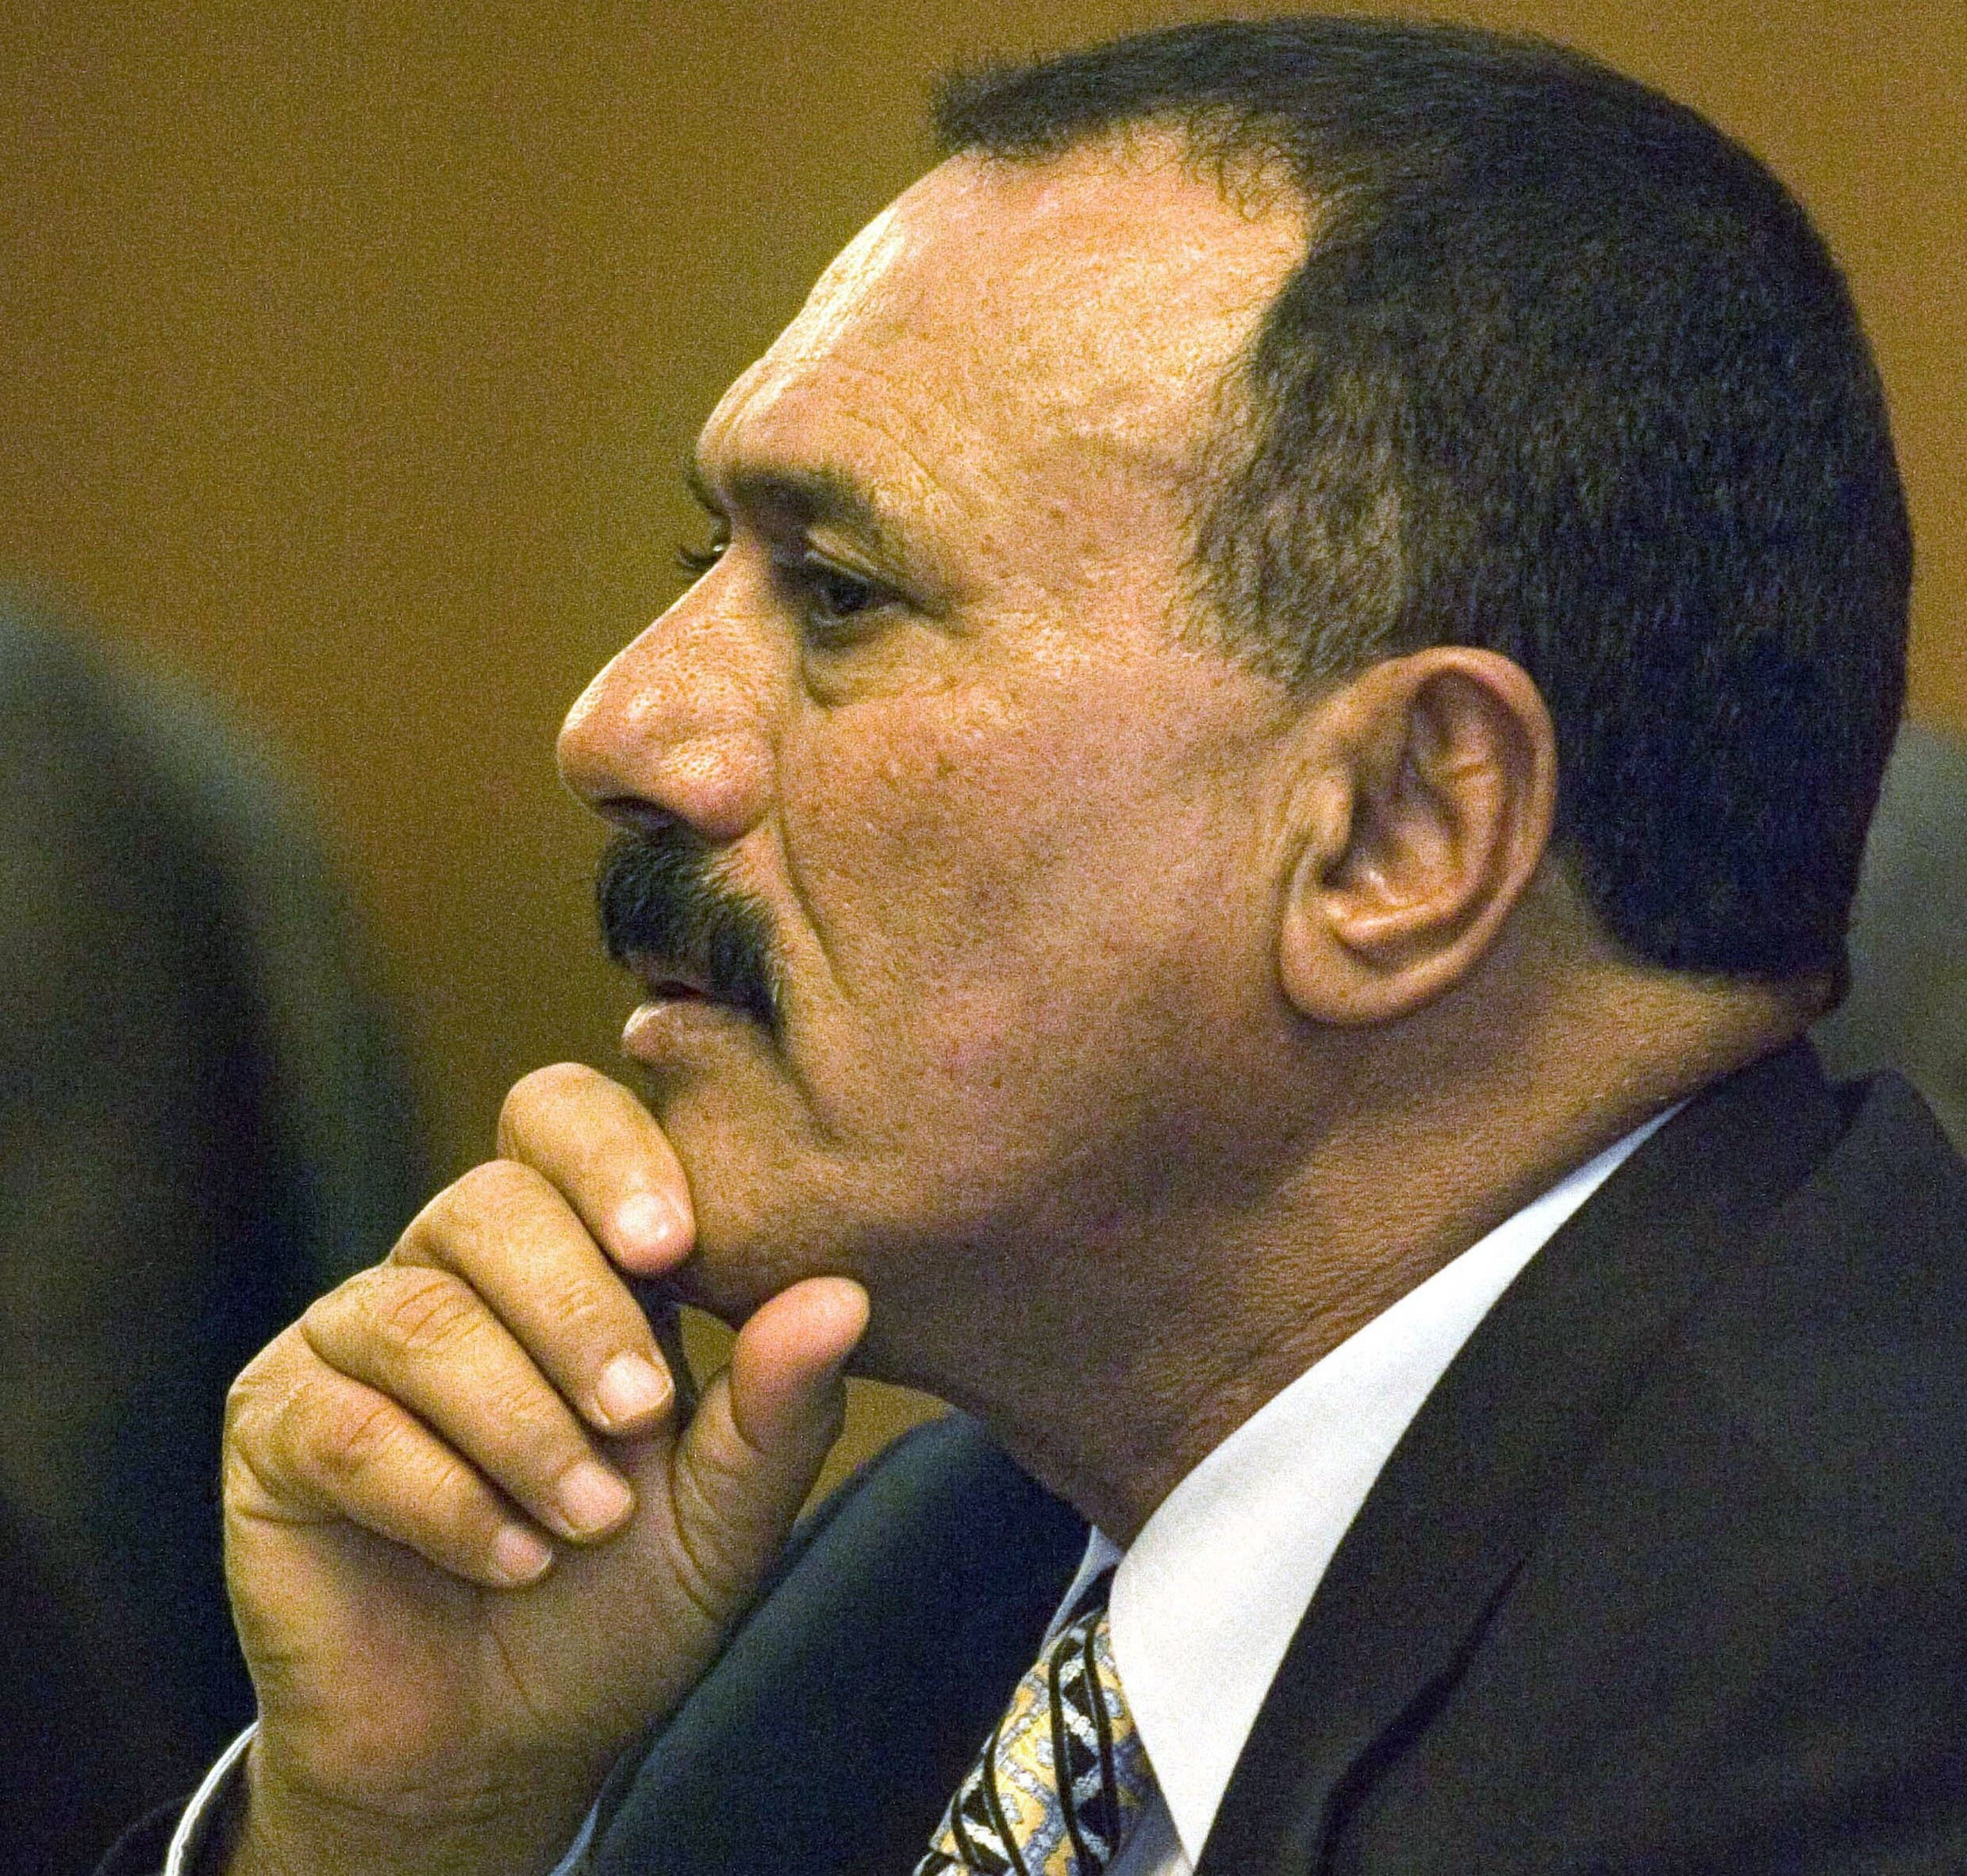 Ali Abdullah Saleh says sorry. He has finally left office as he takes off for health reasons. His medical sojourn may be cut short by the U.S. who are not keen on harboring the dictator-patient.